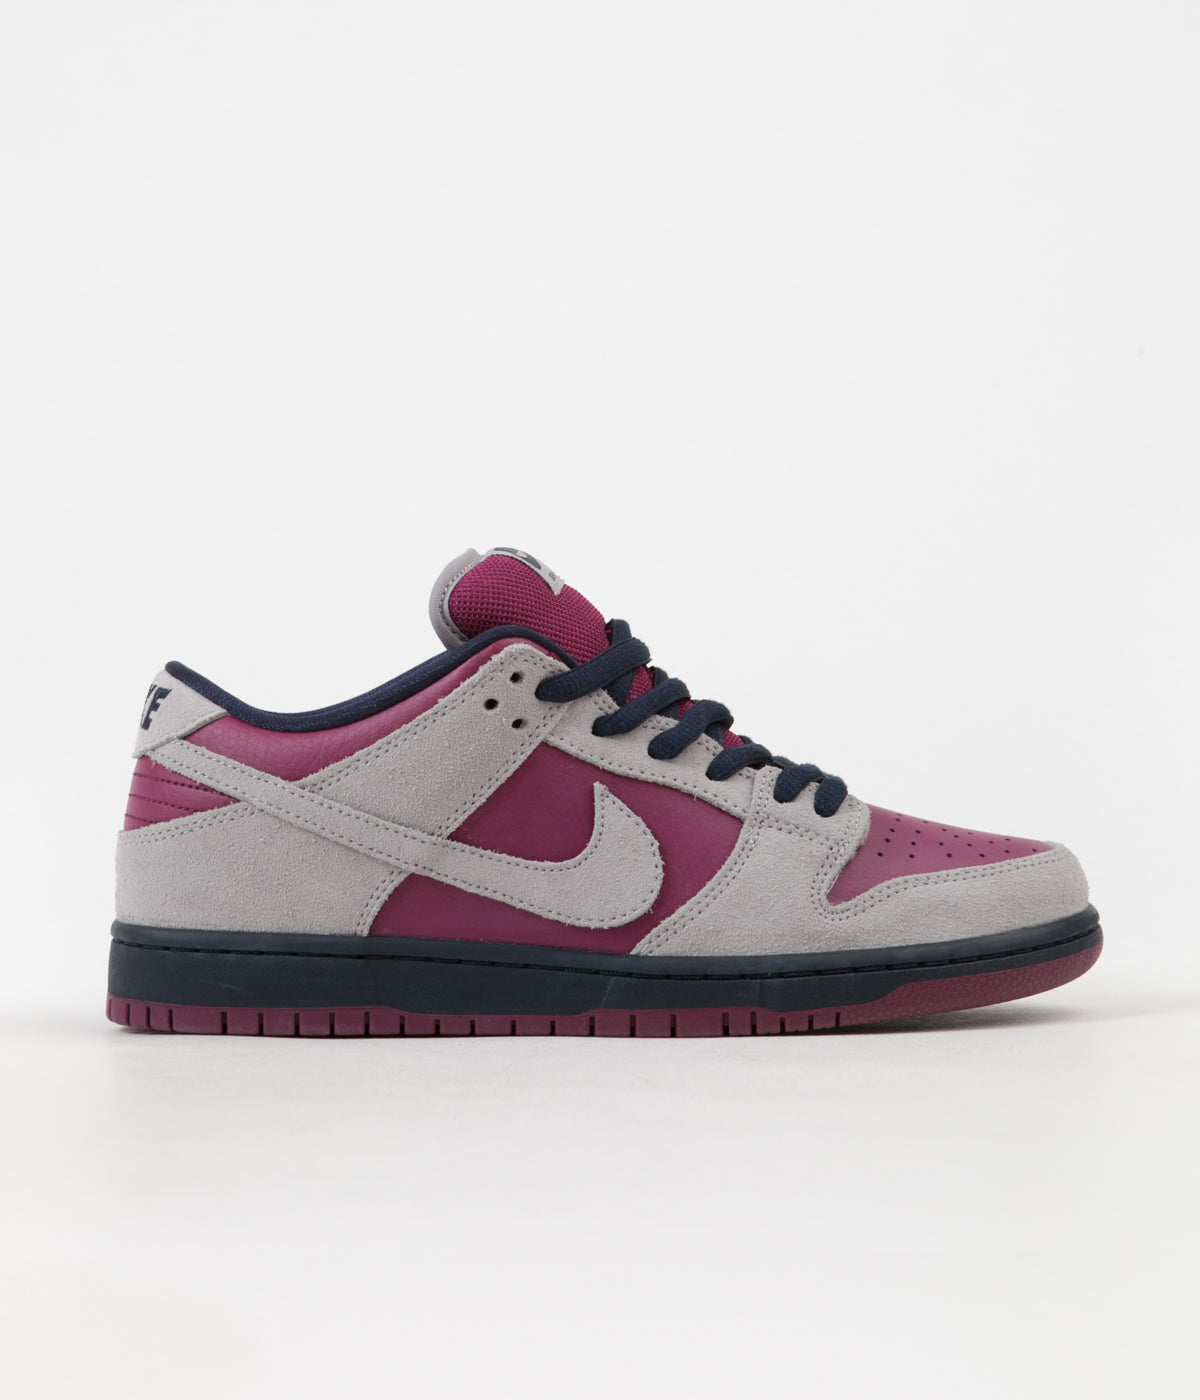 Nike SB Dunk Low Pro Shoes - Atmosphere